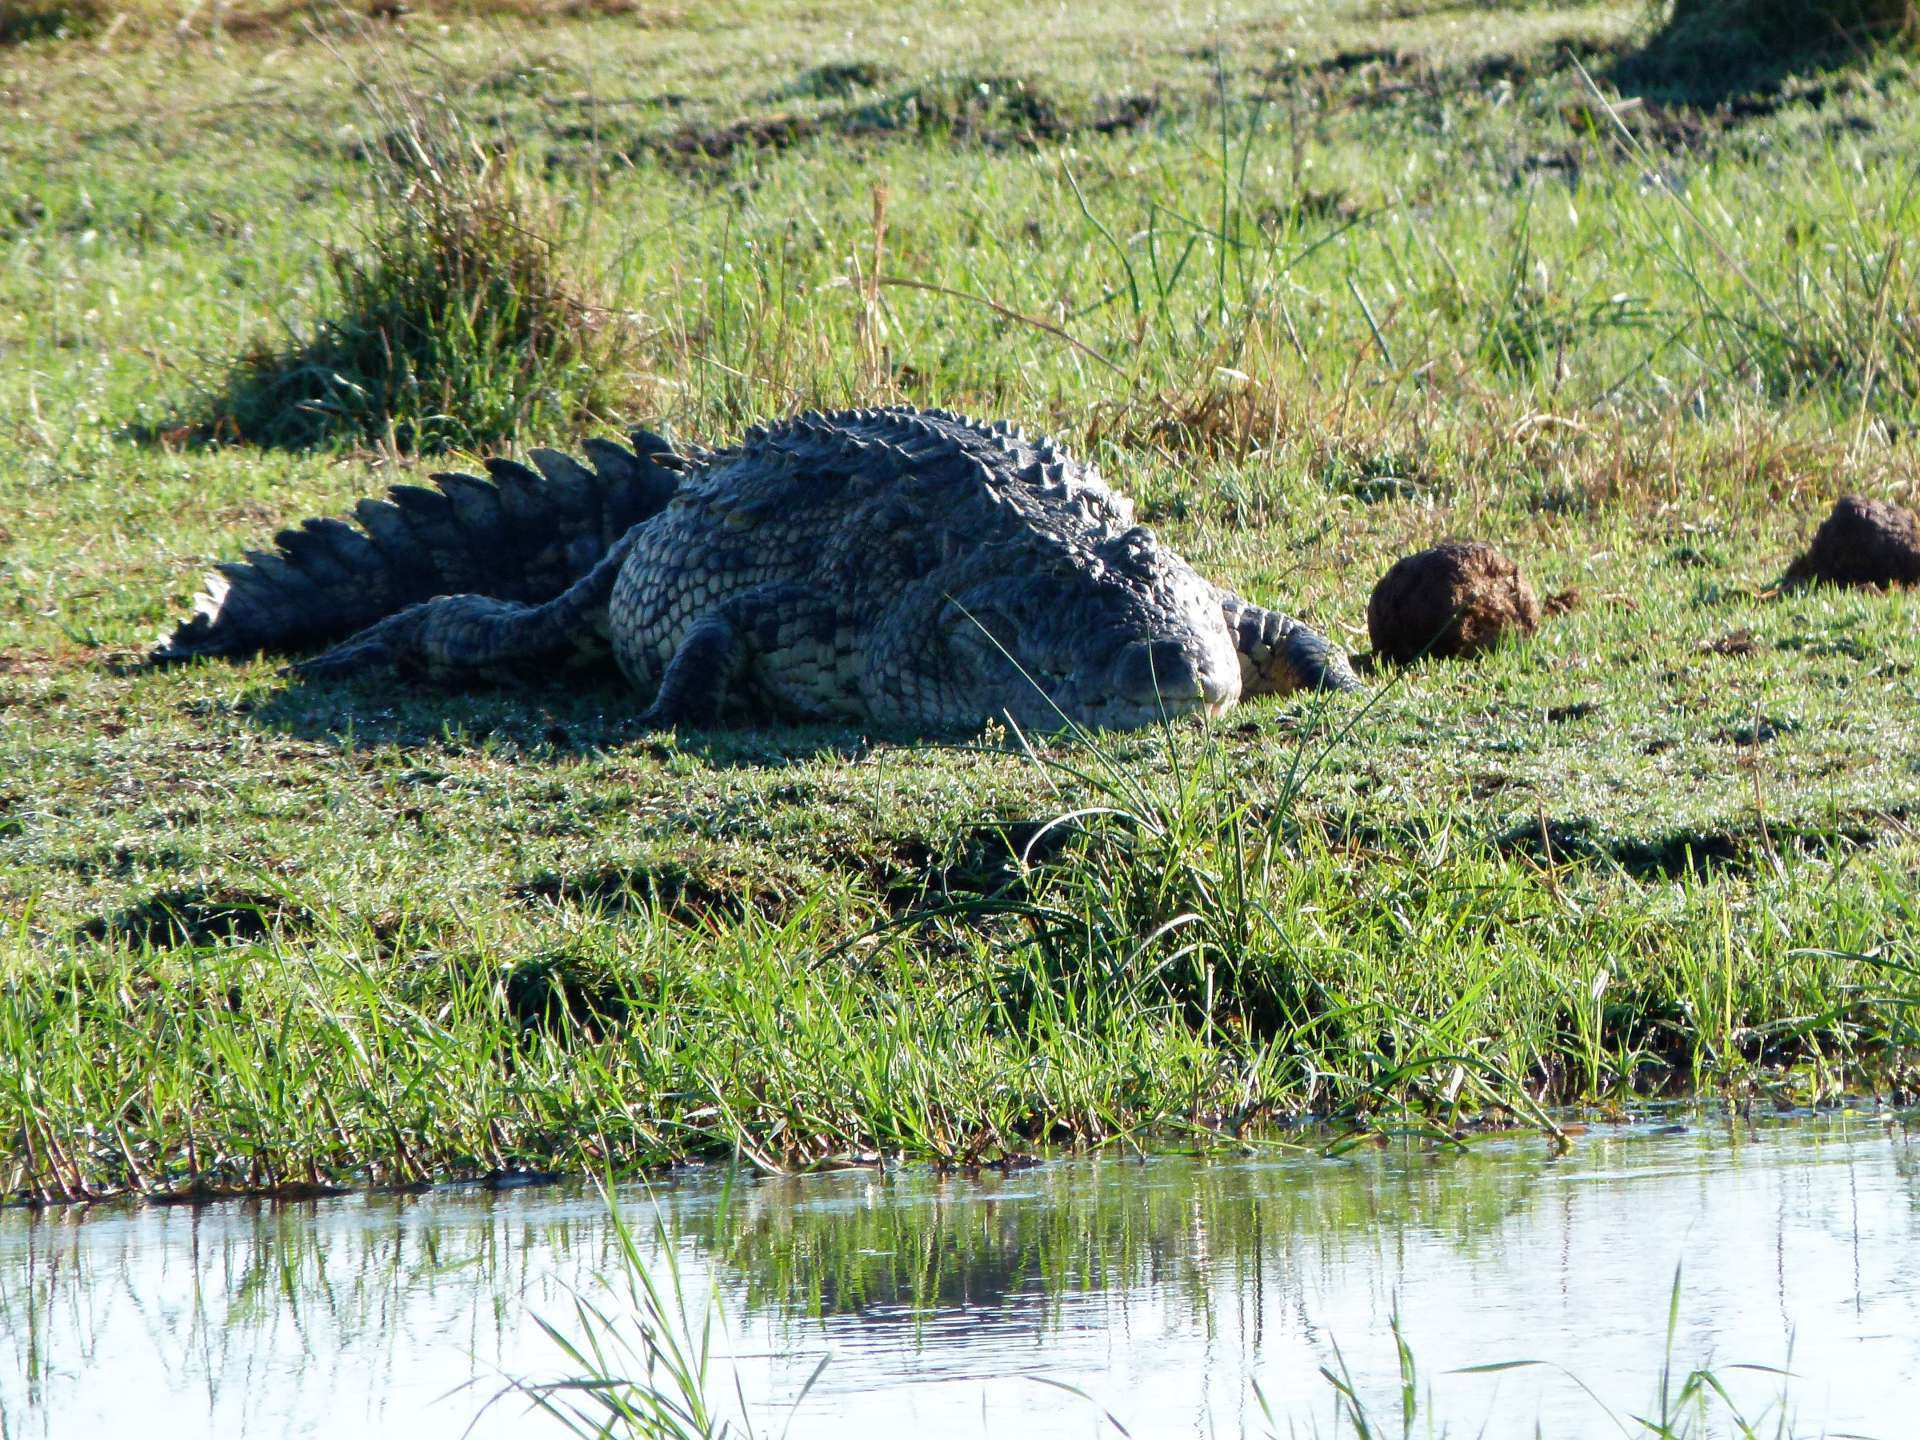 Alligator Botswana Beautiful